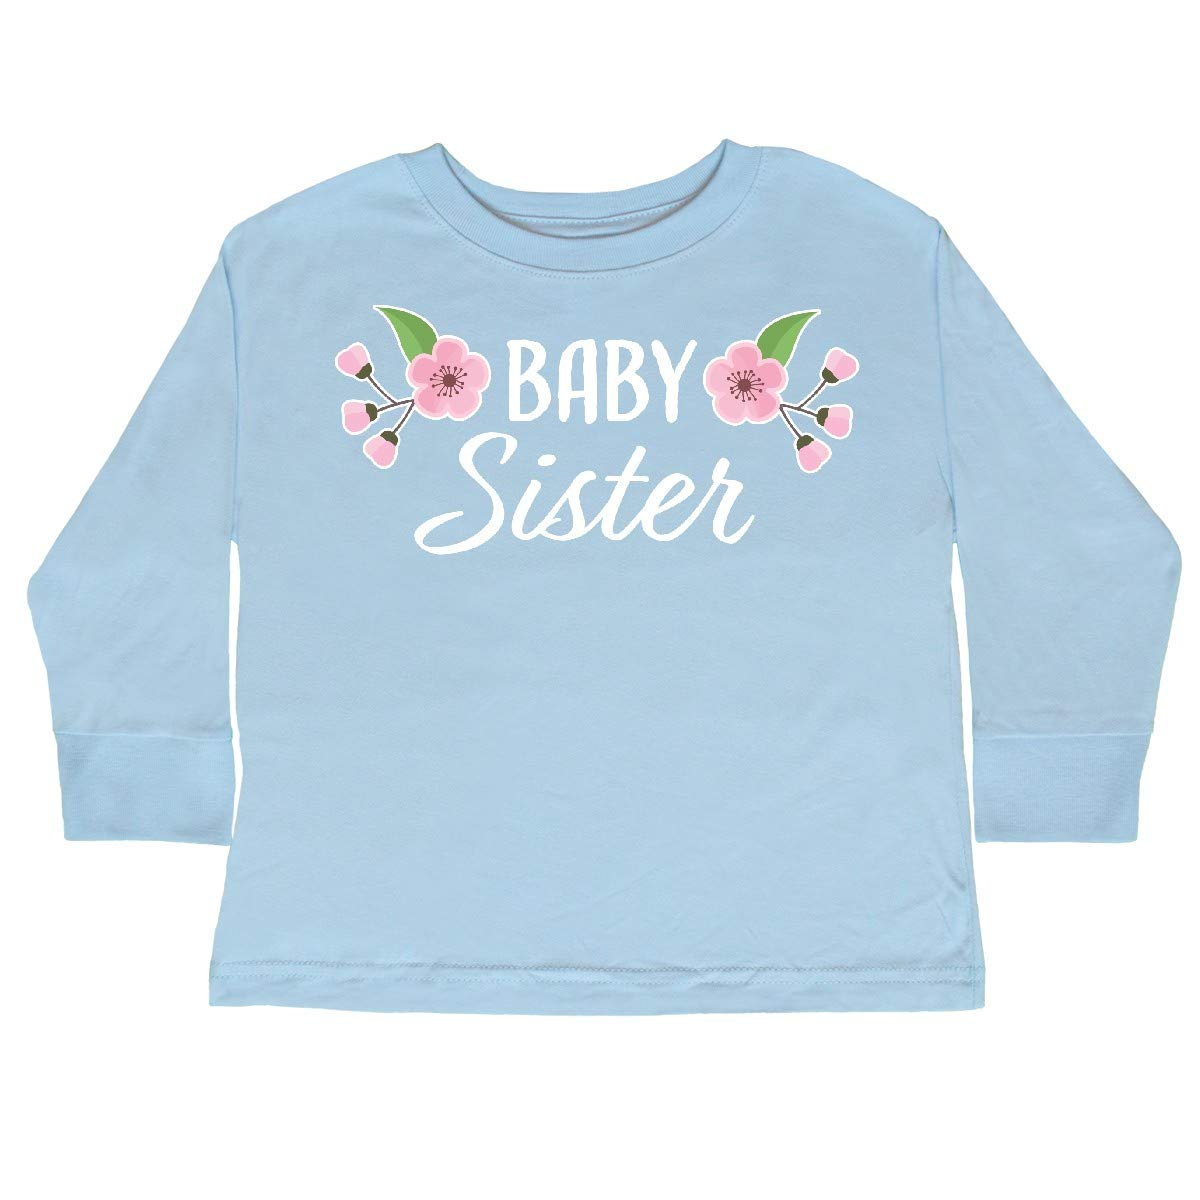 inktastic Baby Sister with Cherry Blossom Flowers Toddler Long Sleeve T-Shirt